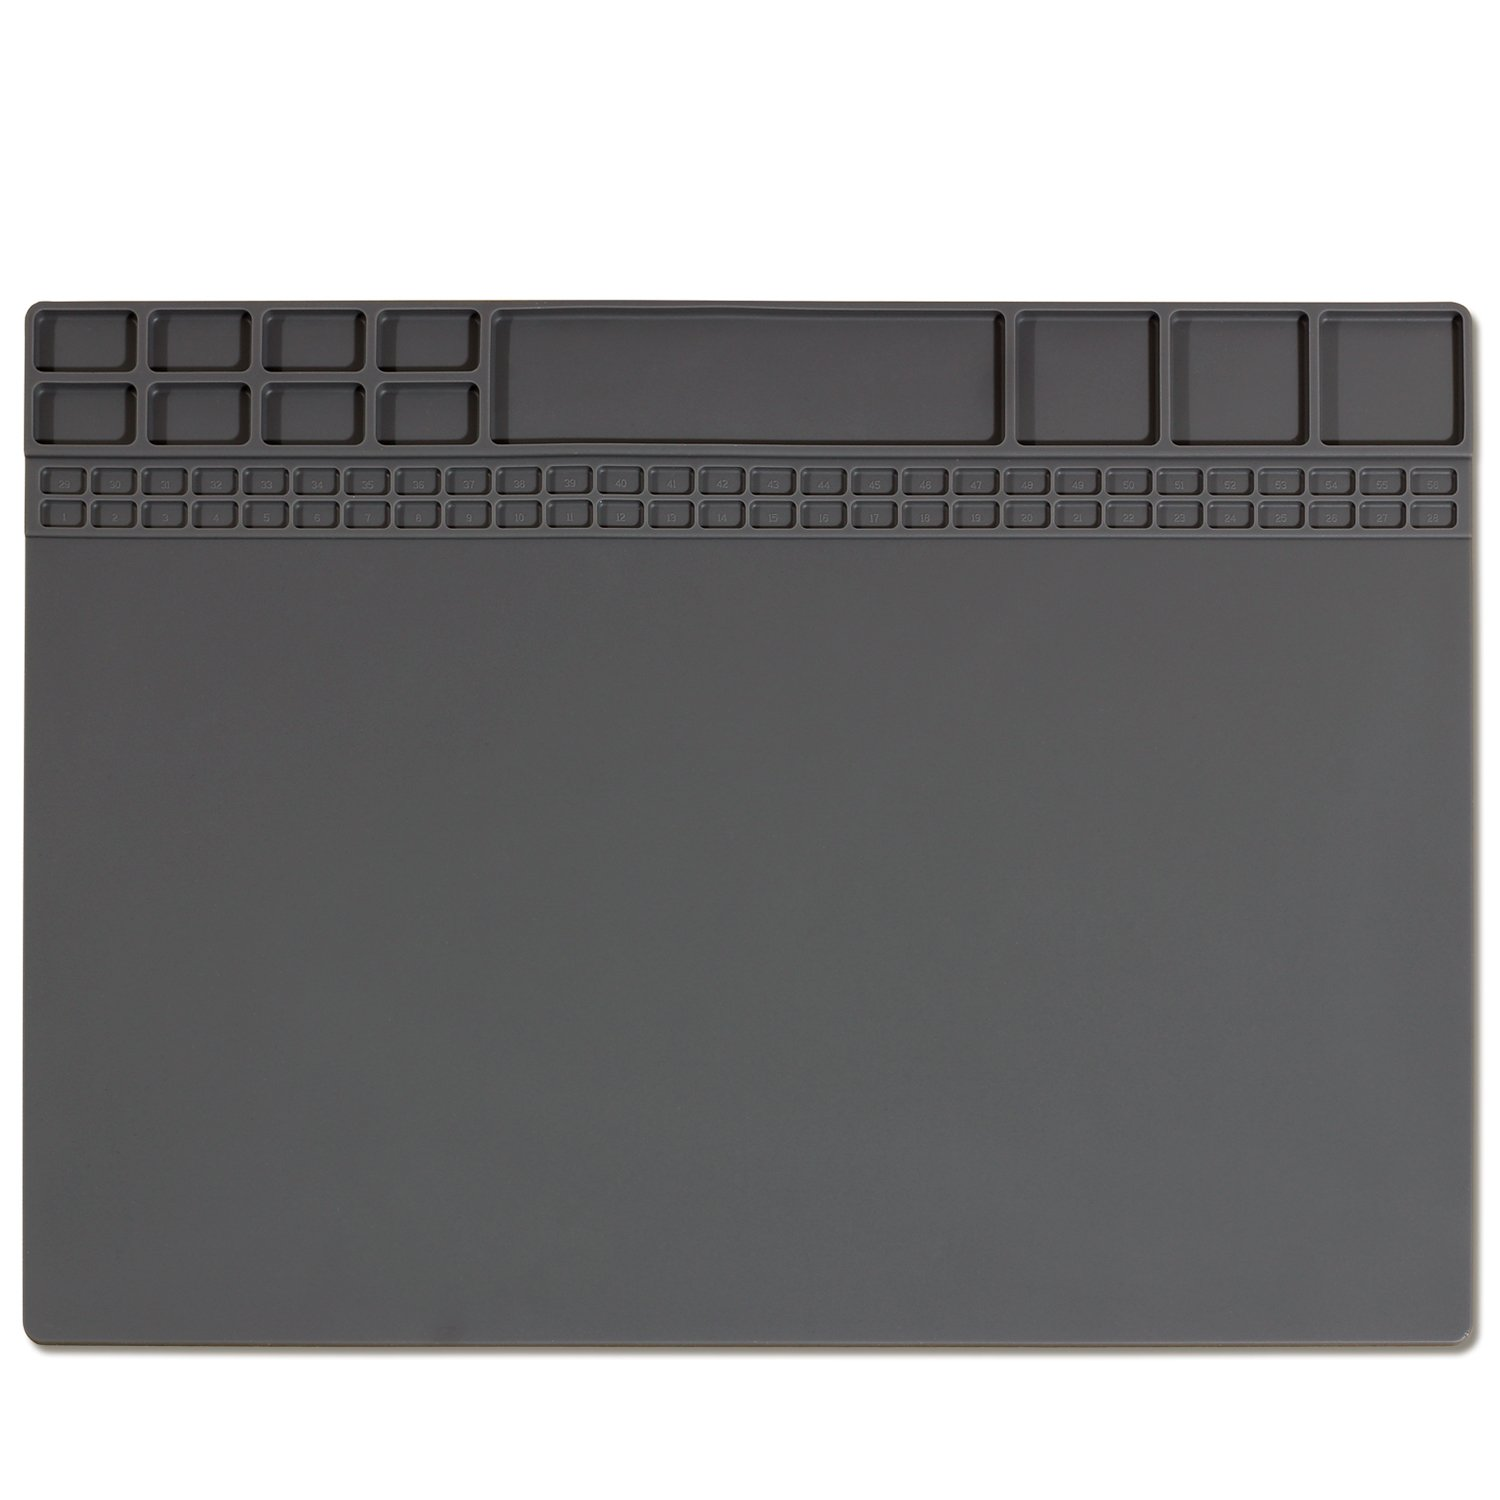 Soldering Mat Heat Resistant 932°F Magnetic Silicone Electronic Repair Mat  for Cellphone, Laptop, Computer, Heat Insulation Pad for Soldering Iron Station15.9'' x 12'' (Grey) by CEATECH